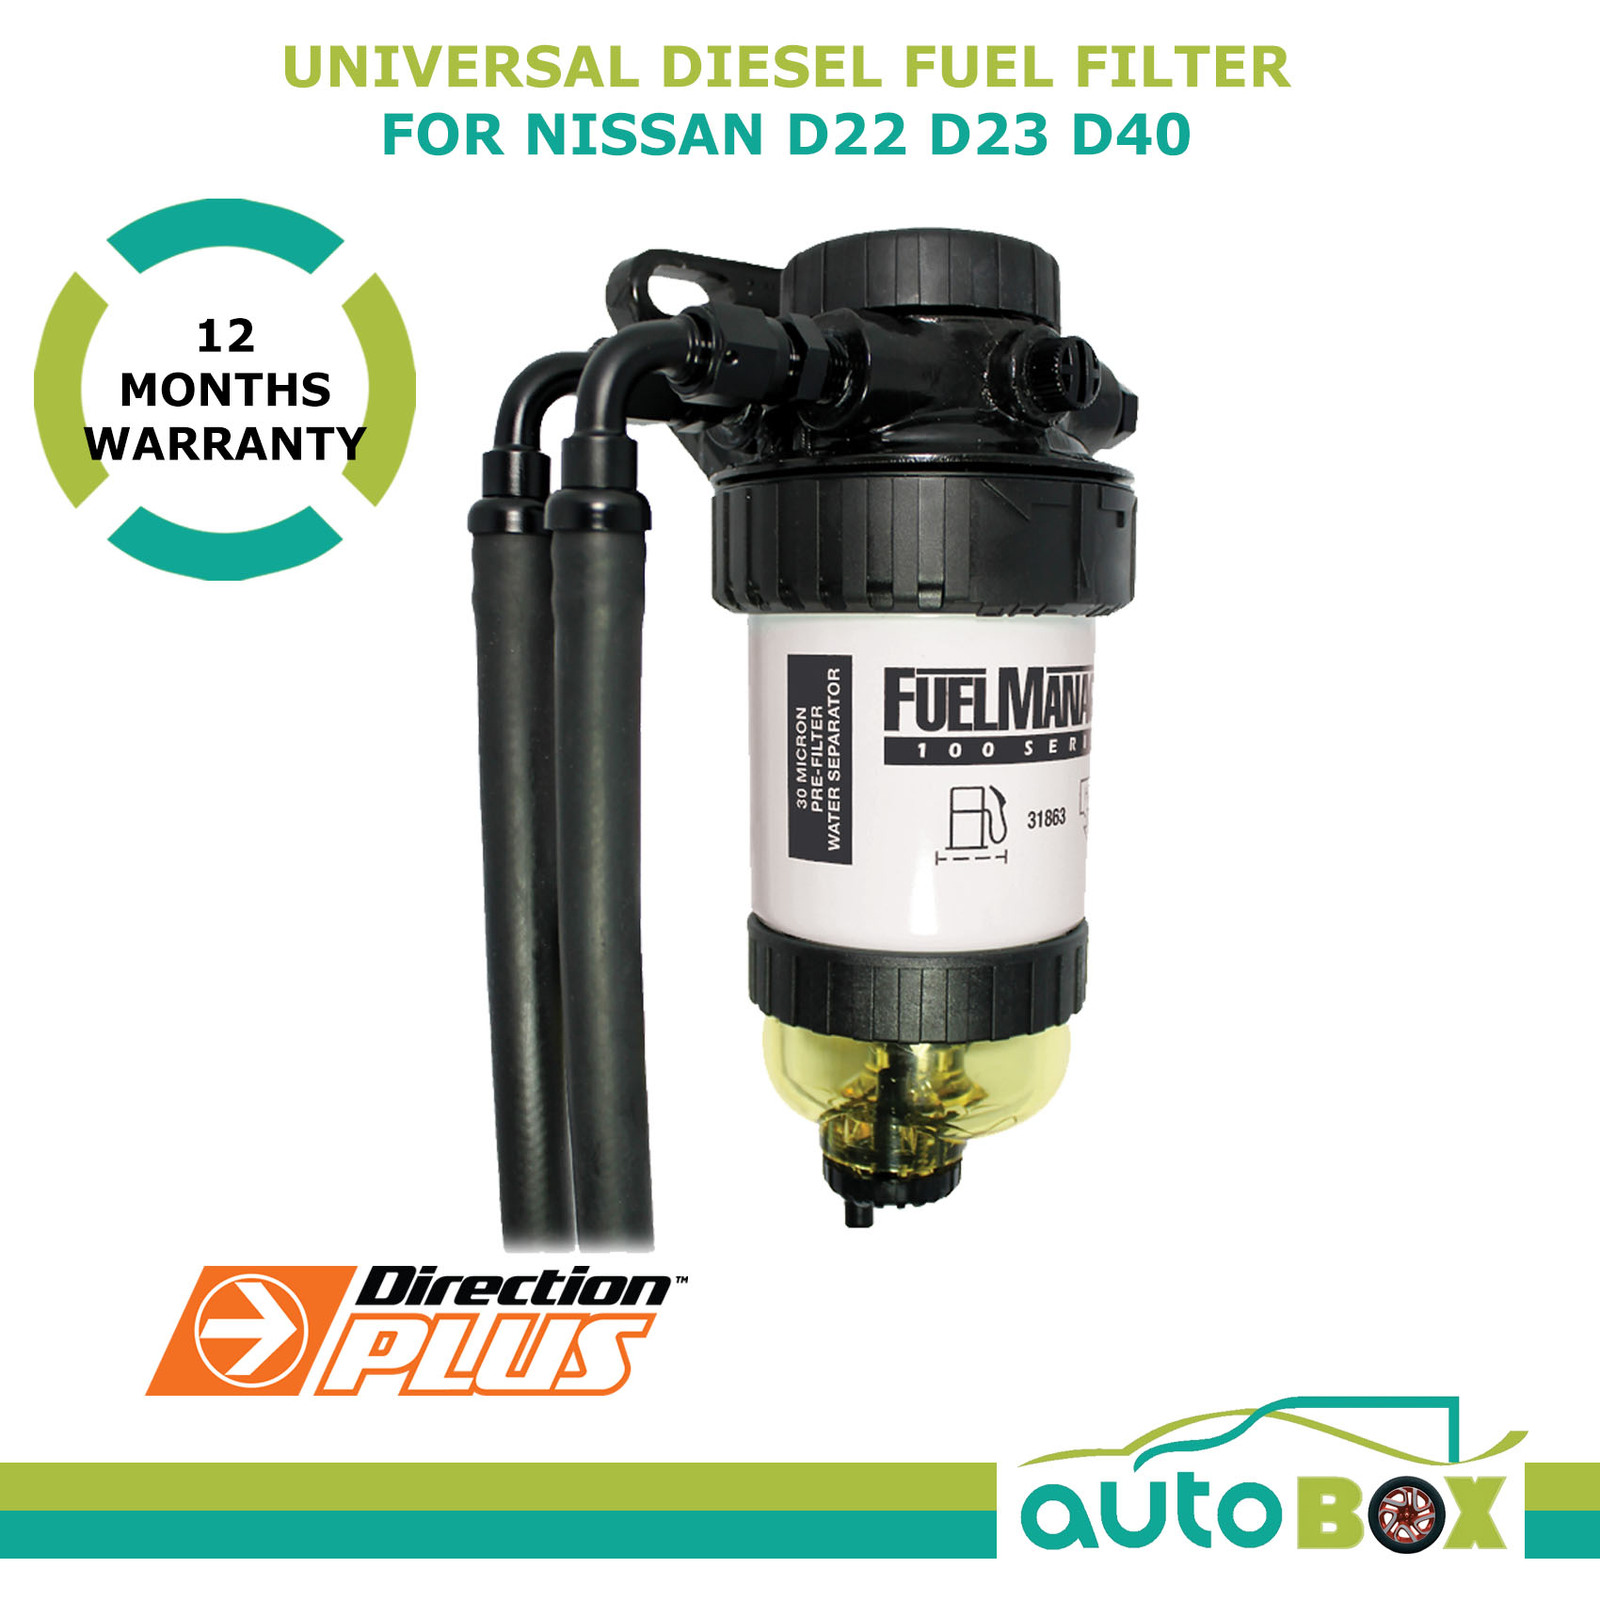 Diesel Fuel Filter Water Separator Pre-Filter for Nissan D22 D23 D40  (Manual) | Autobox